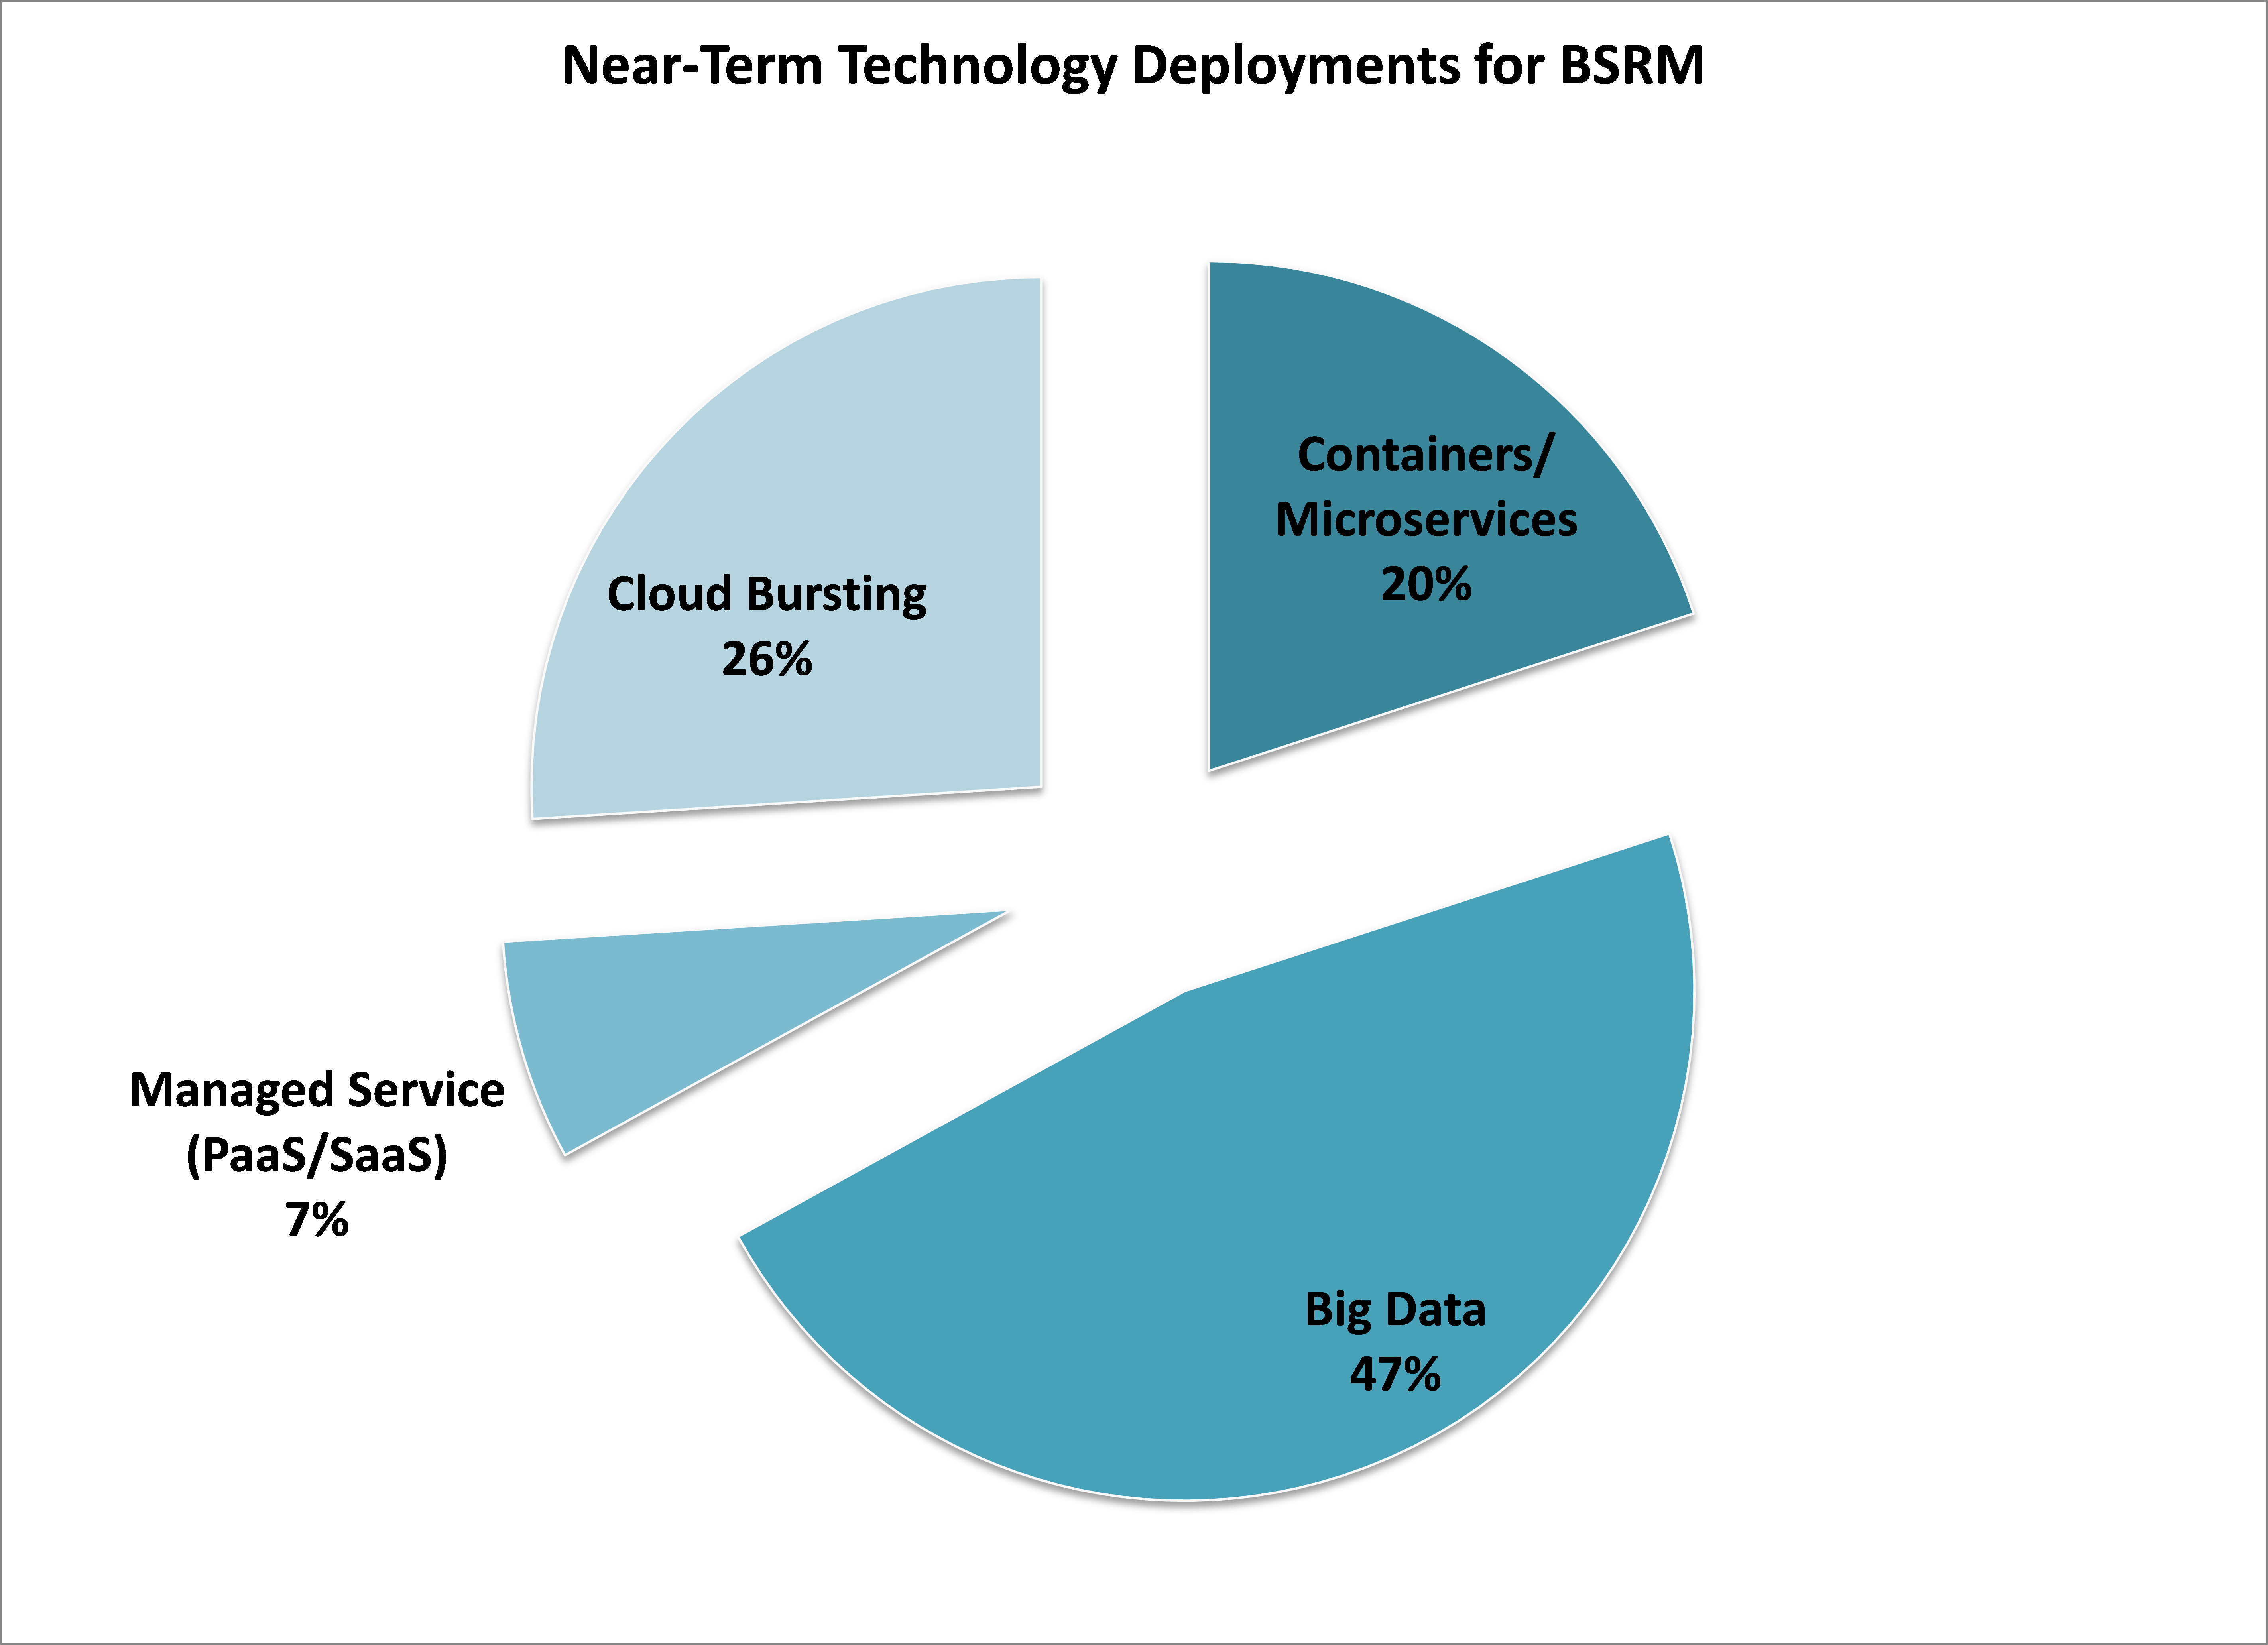 Graph shows response distribution of near-term technology deployment for BSRM